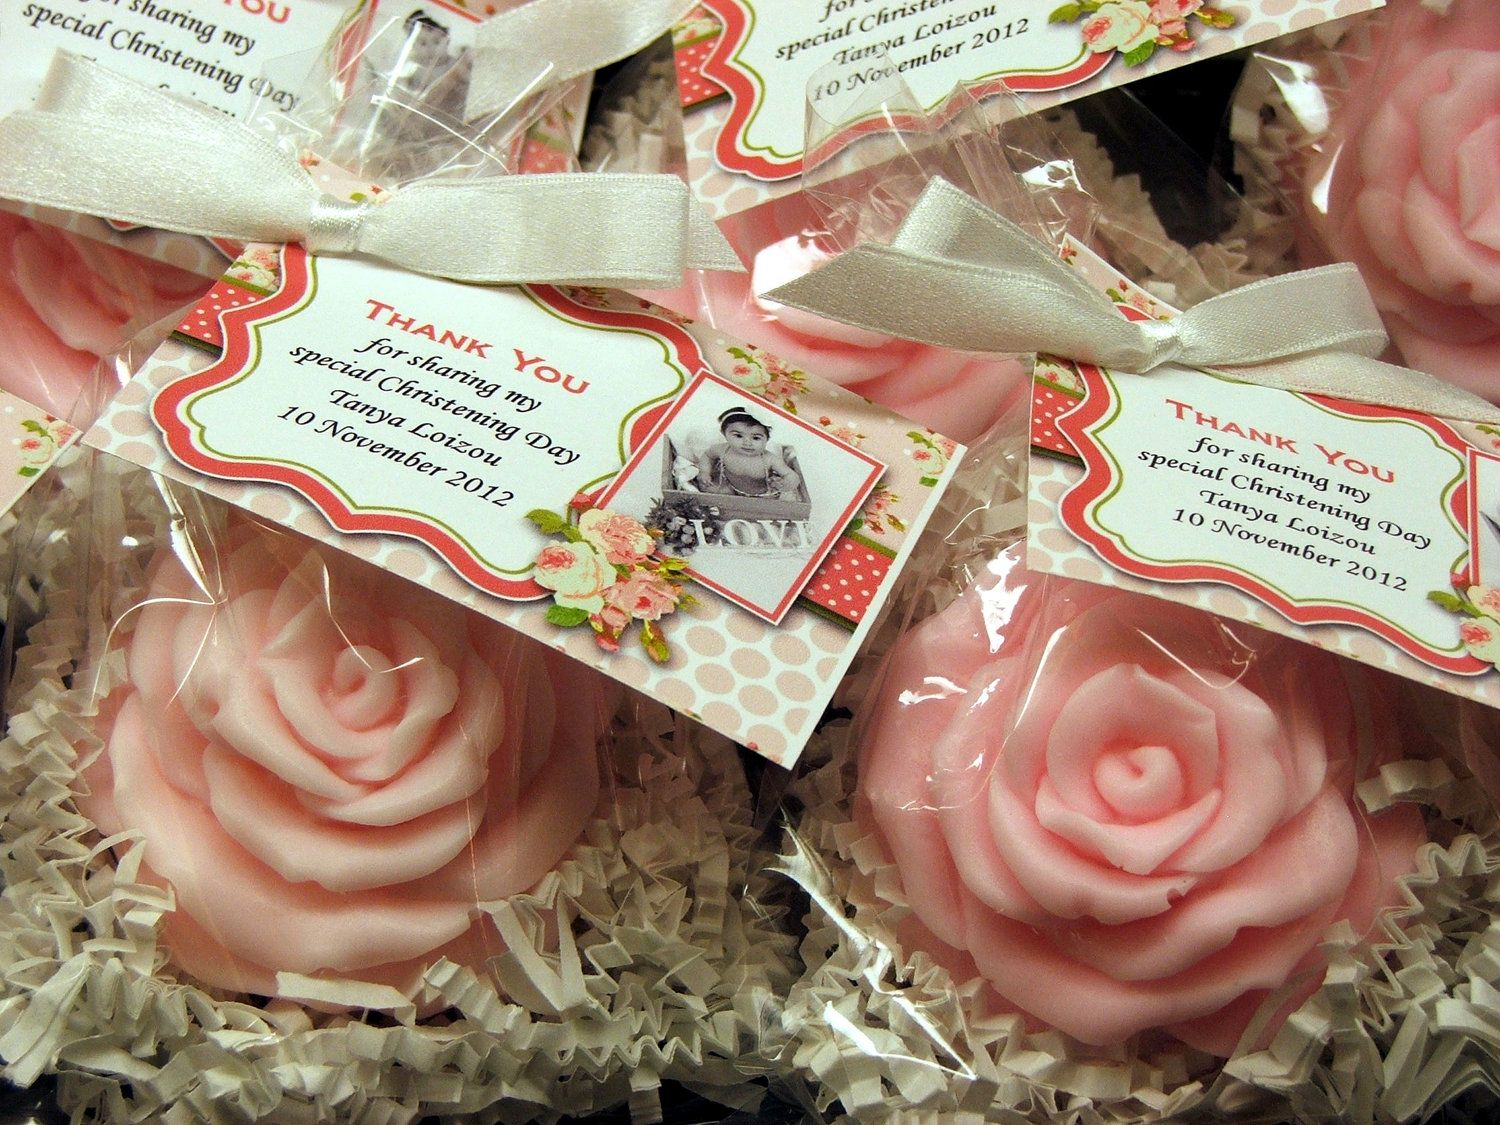 Set of 10 Large Shabby Chic Rose Soap Favors Bridal Shower Baby Shower Wedding Birthday Christening  Bridal Shower Party Favors. $25.00, via Etsy - DIY???